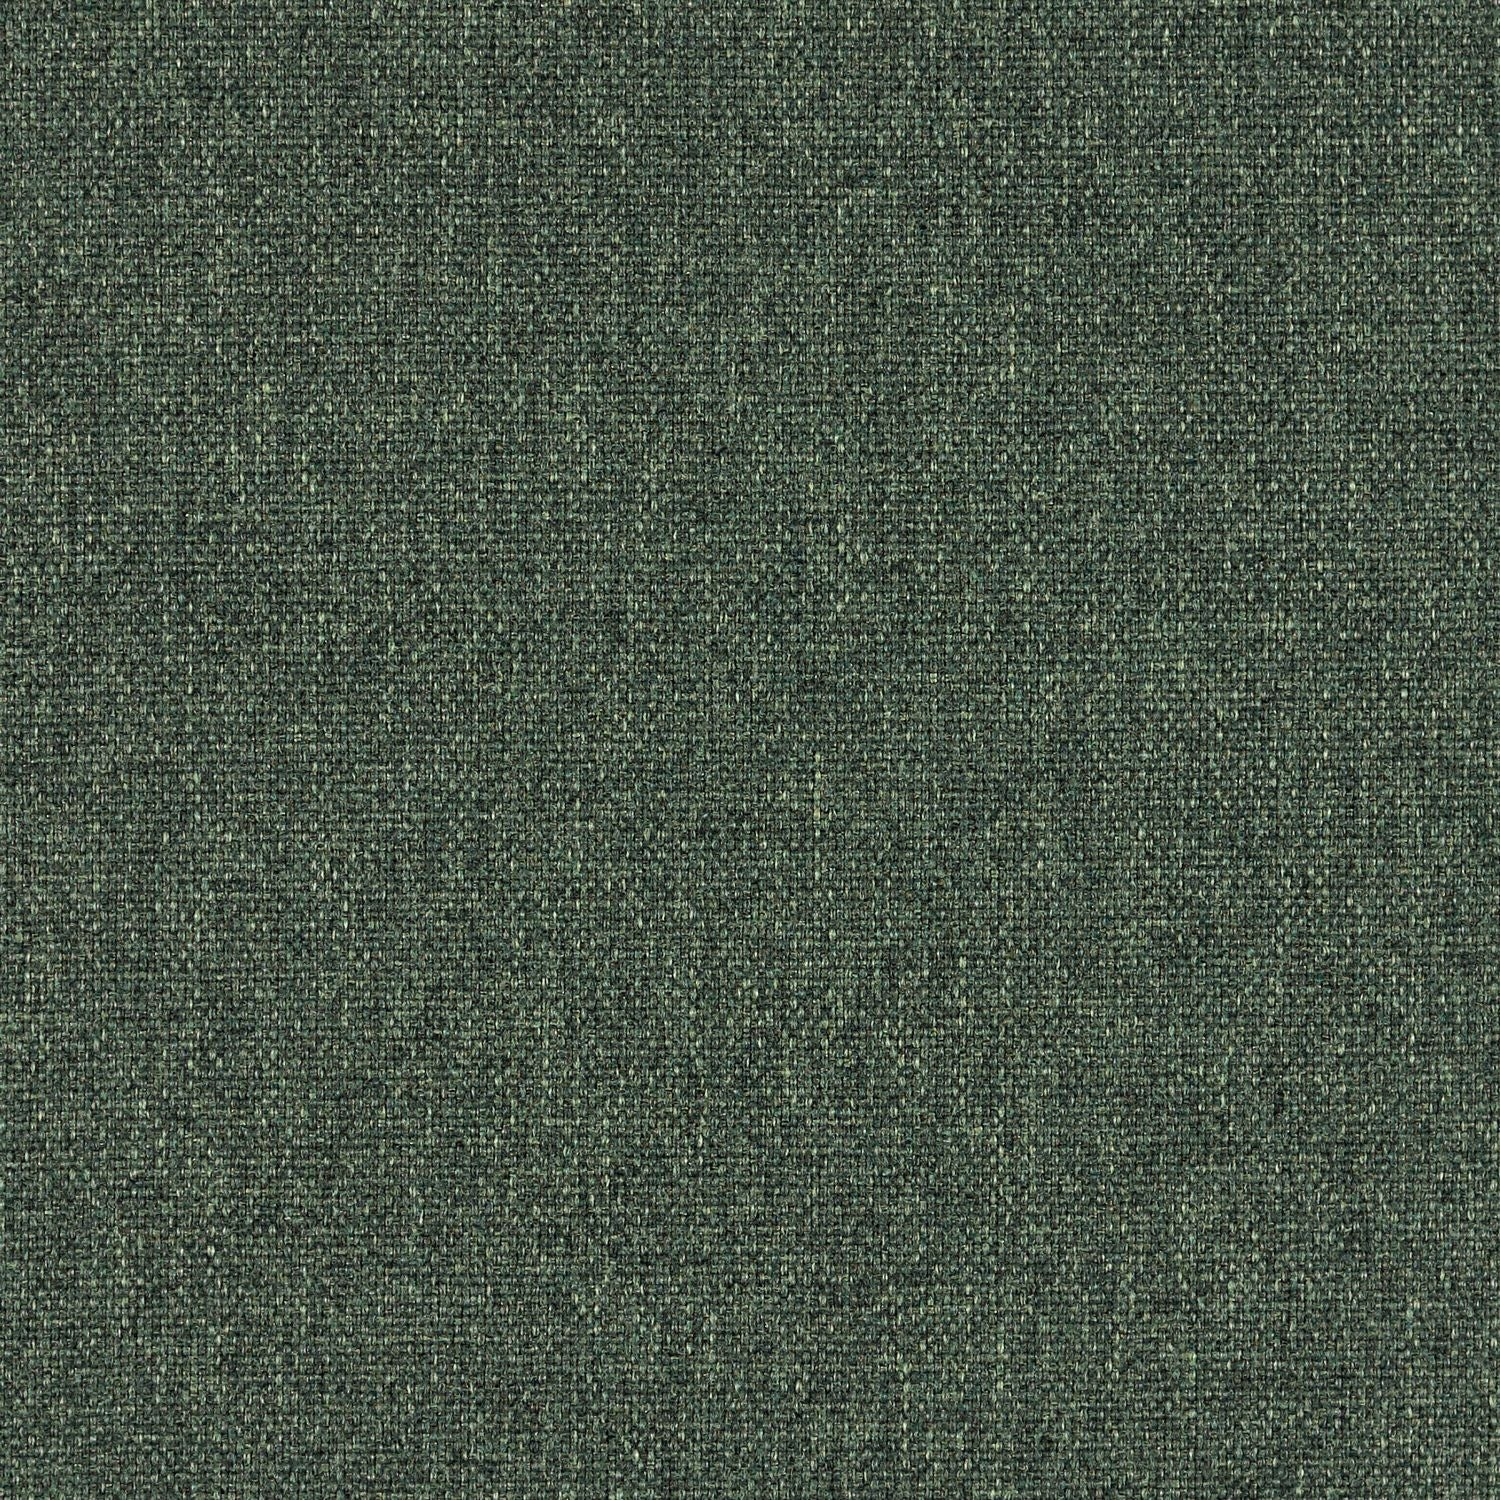 Heather Tech - Loden Tech - 4059 - 09